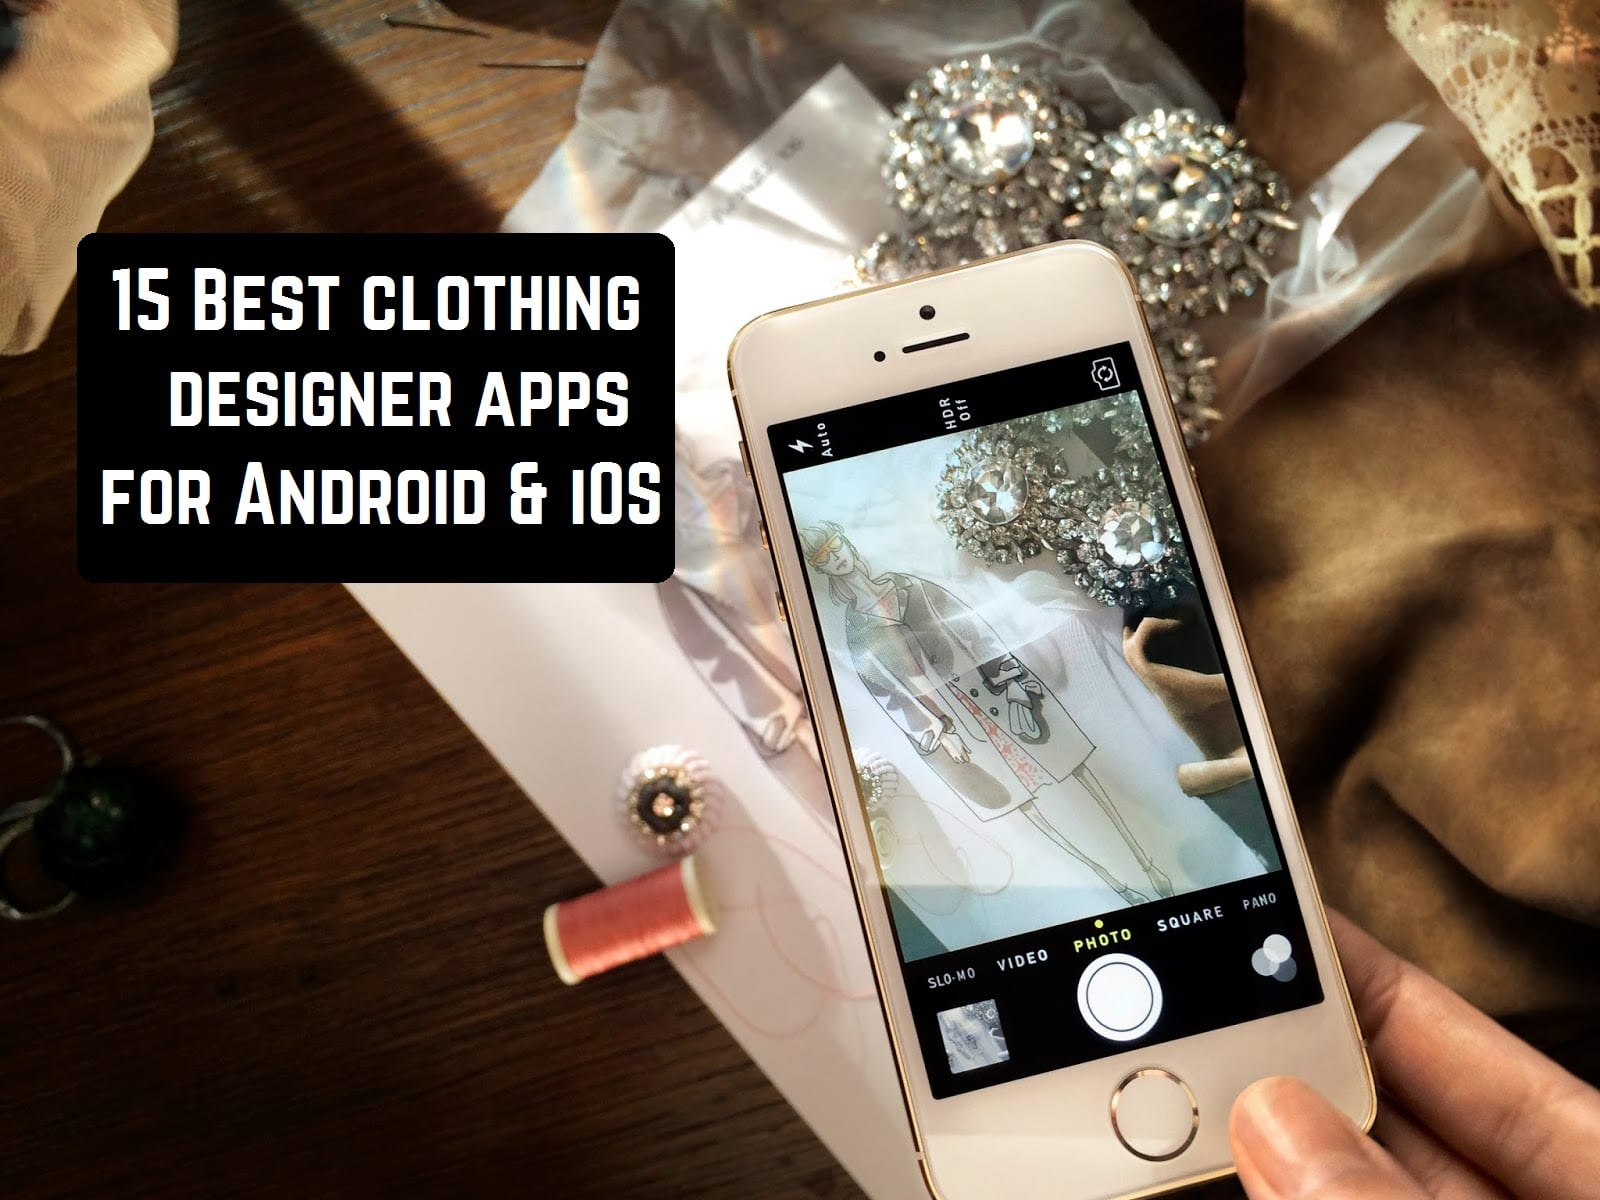 15 Best Clothing Designer Apps For Android Ios Free Apps For Android And Ios